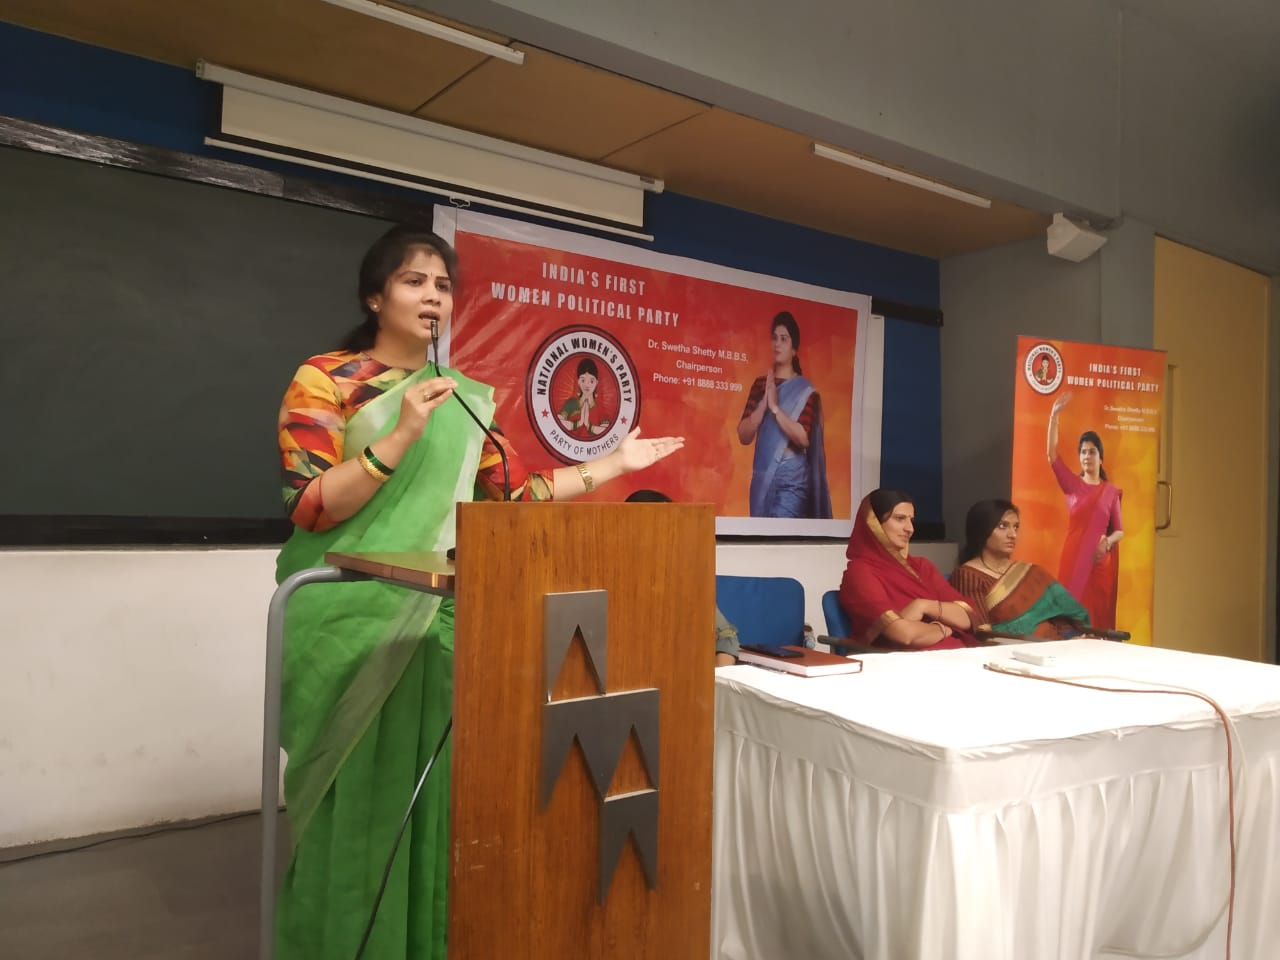 Dr Swetha Shetty, MBBS, Chairperson, National Women's Party1